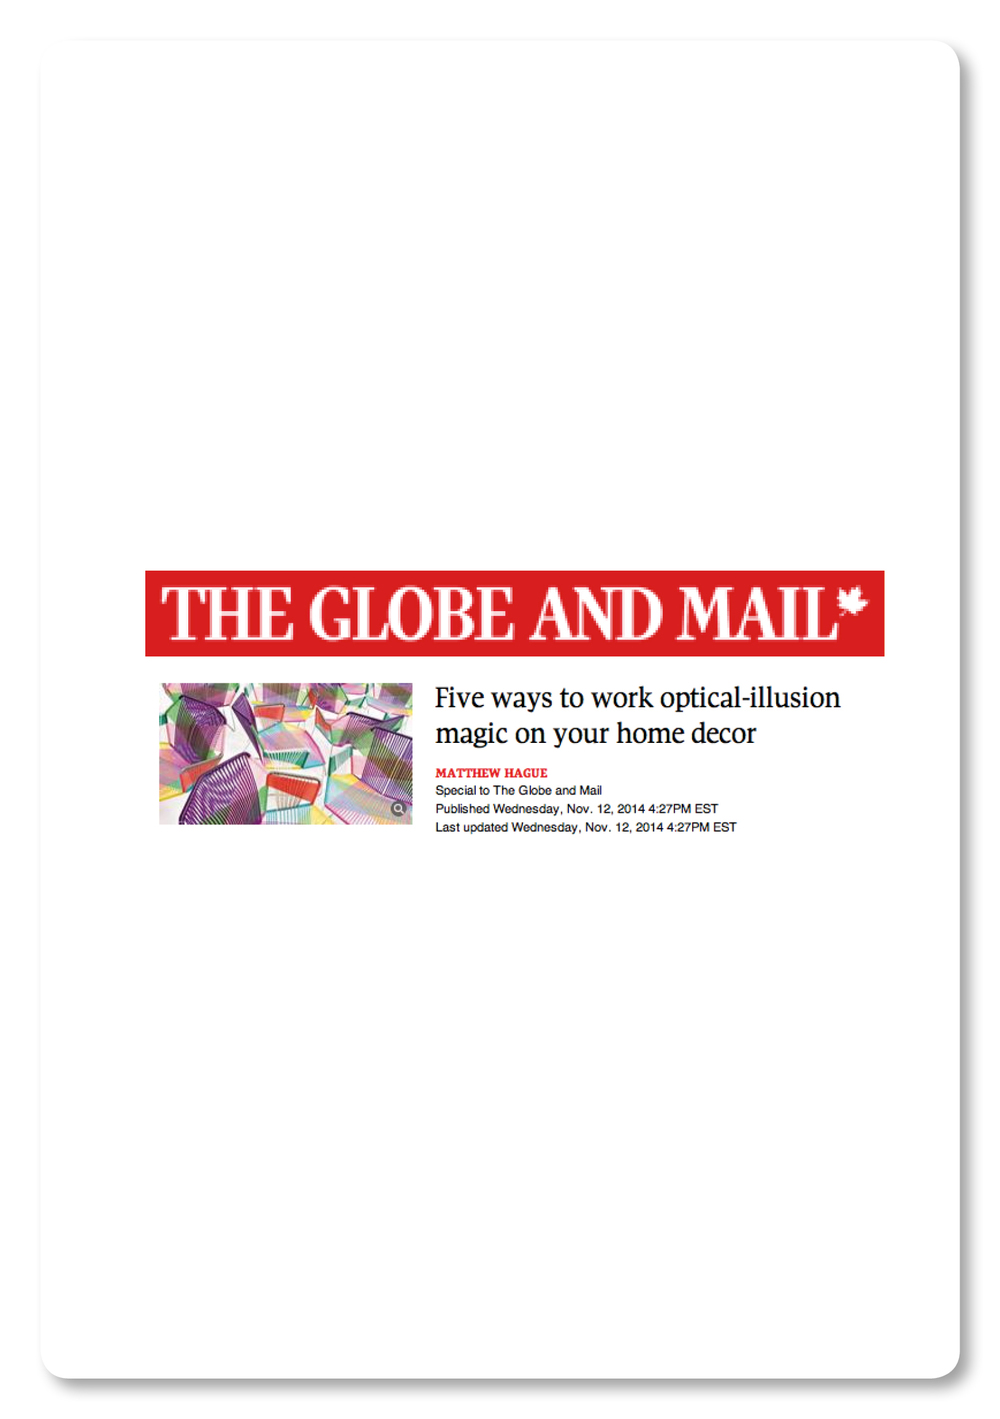 The globe and mail 11/2014